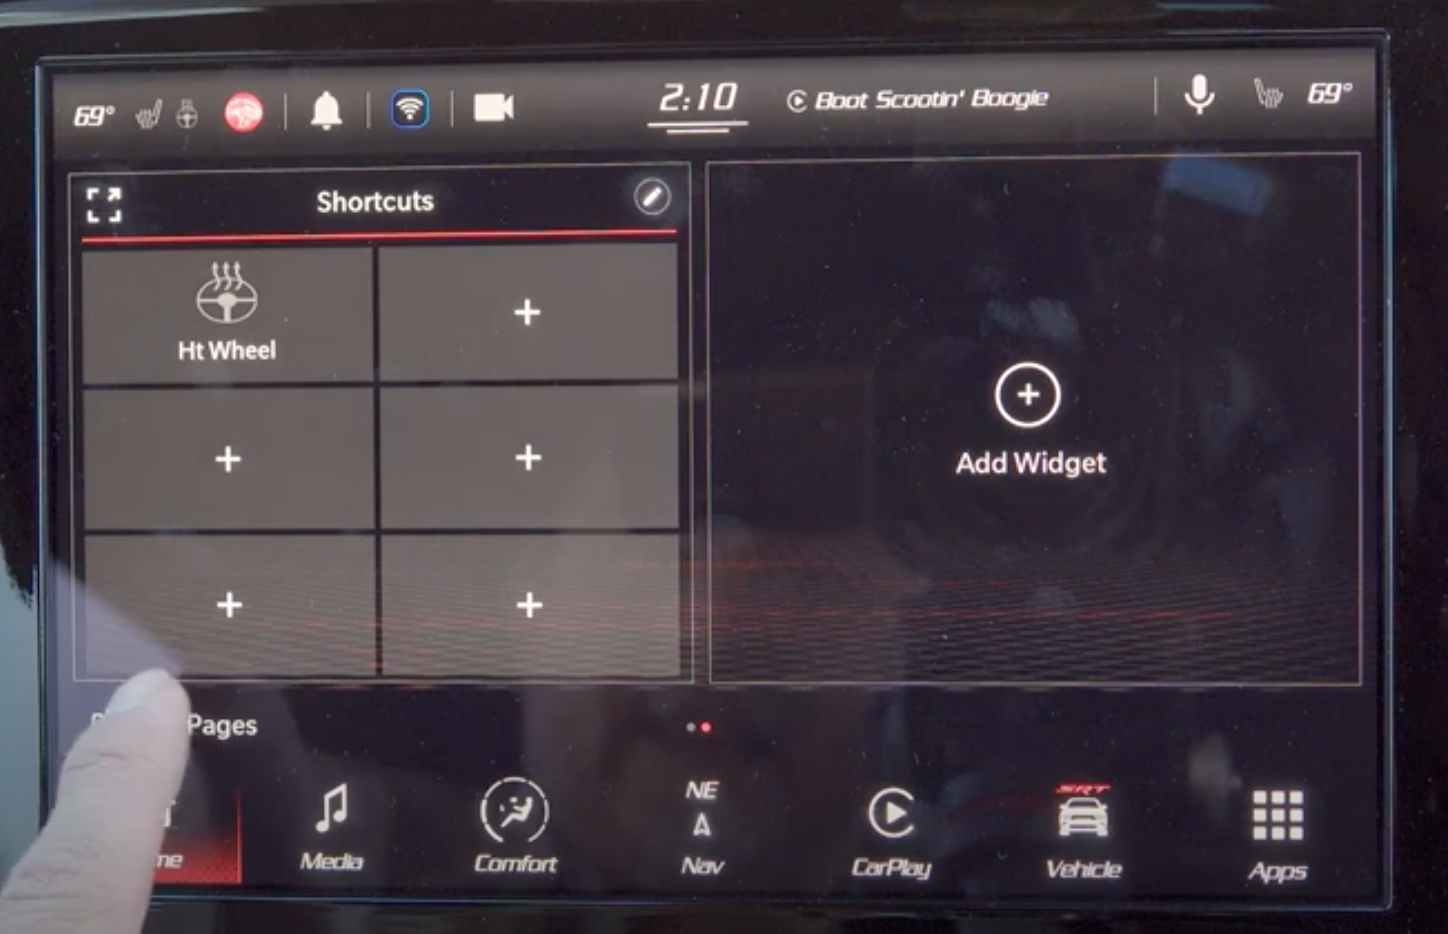 Adding shortcuts and widgets to the home page of the infotainment display